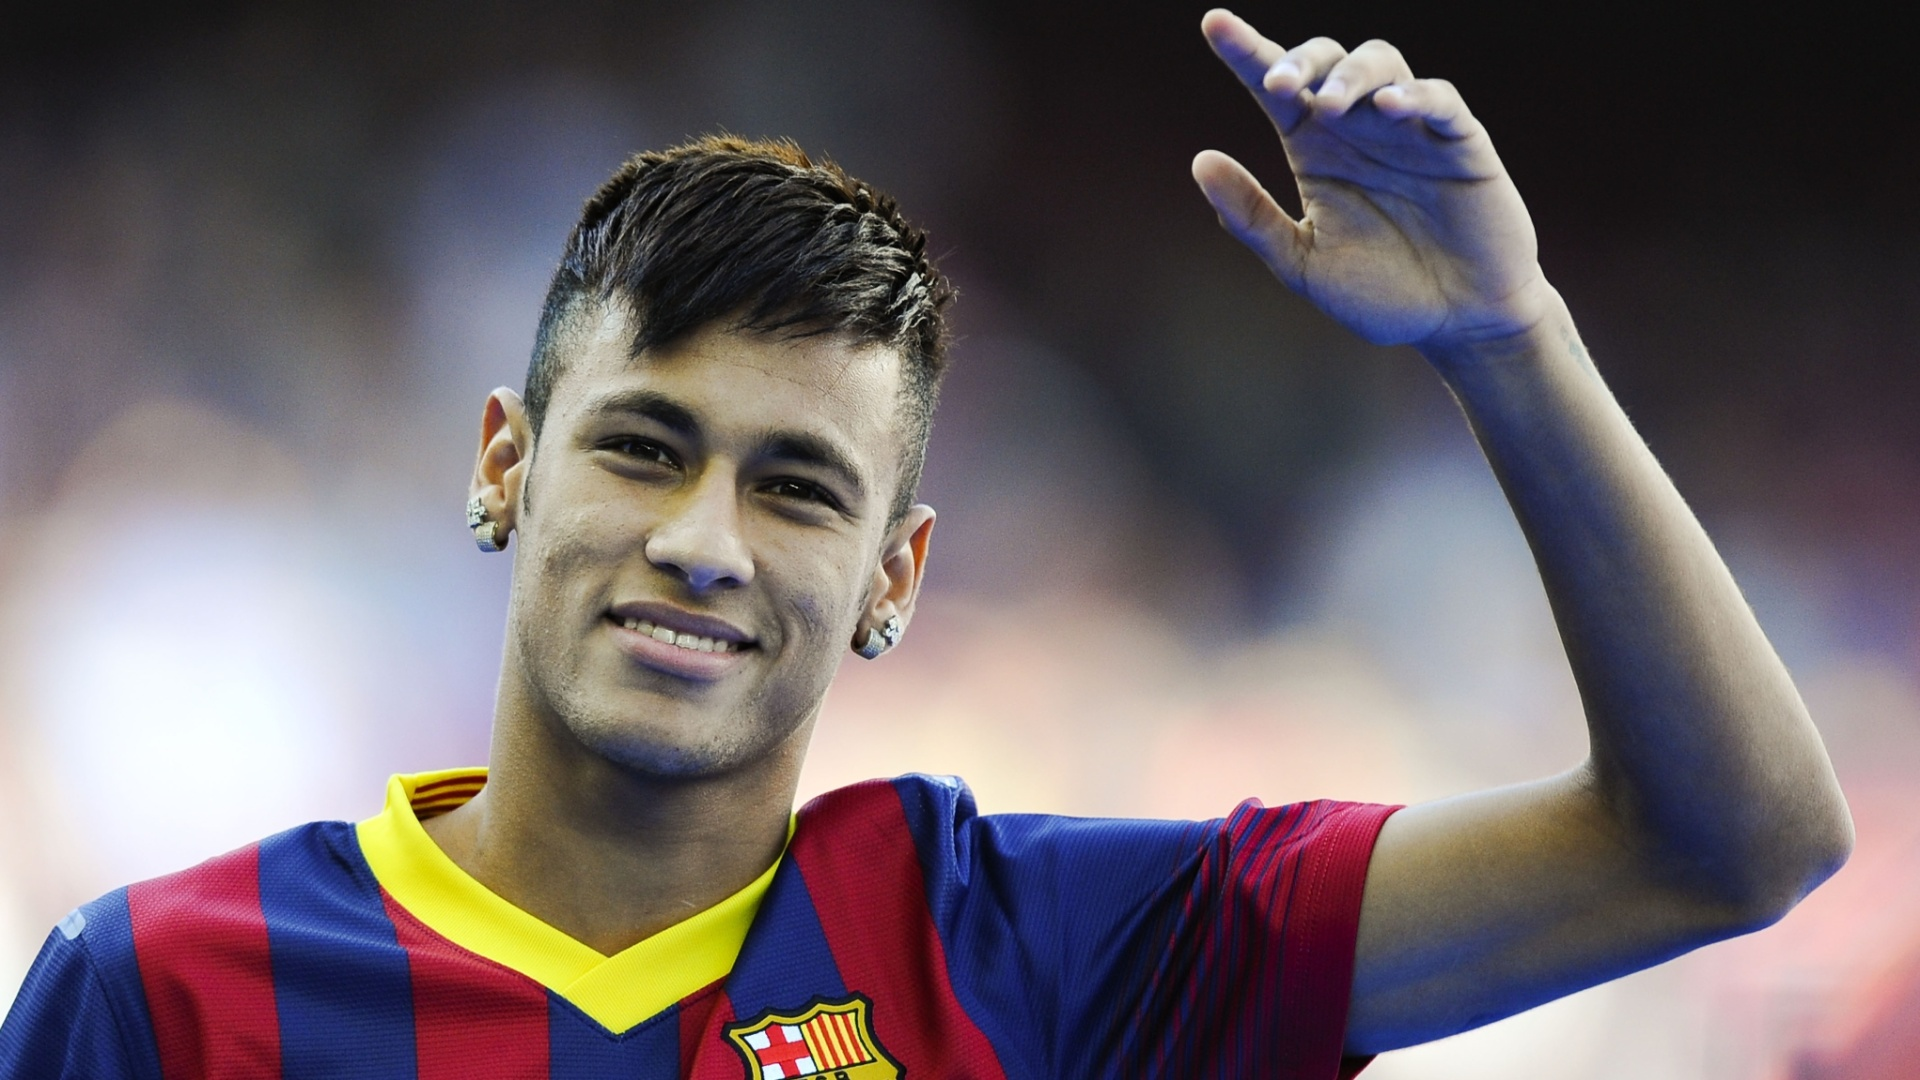 42 Interesting Facts About Neymar Became A Father At Age 19 Named The Most Marketable Athlete In The World People Boomsbeat